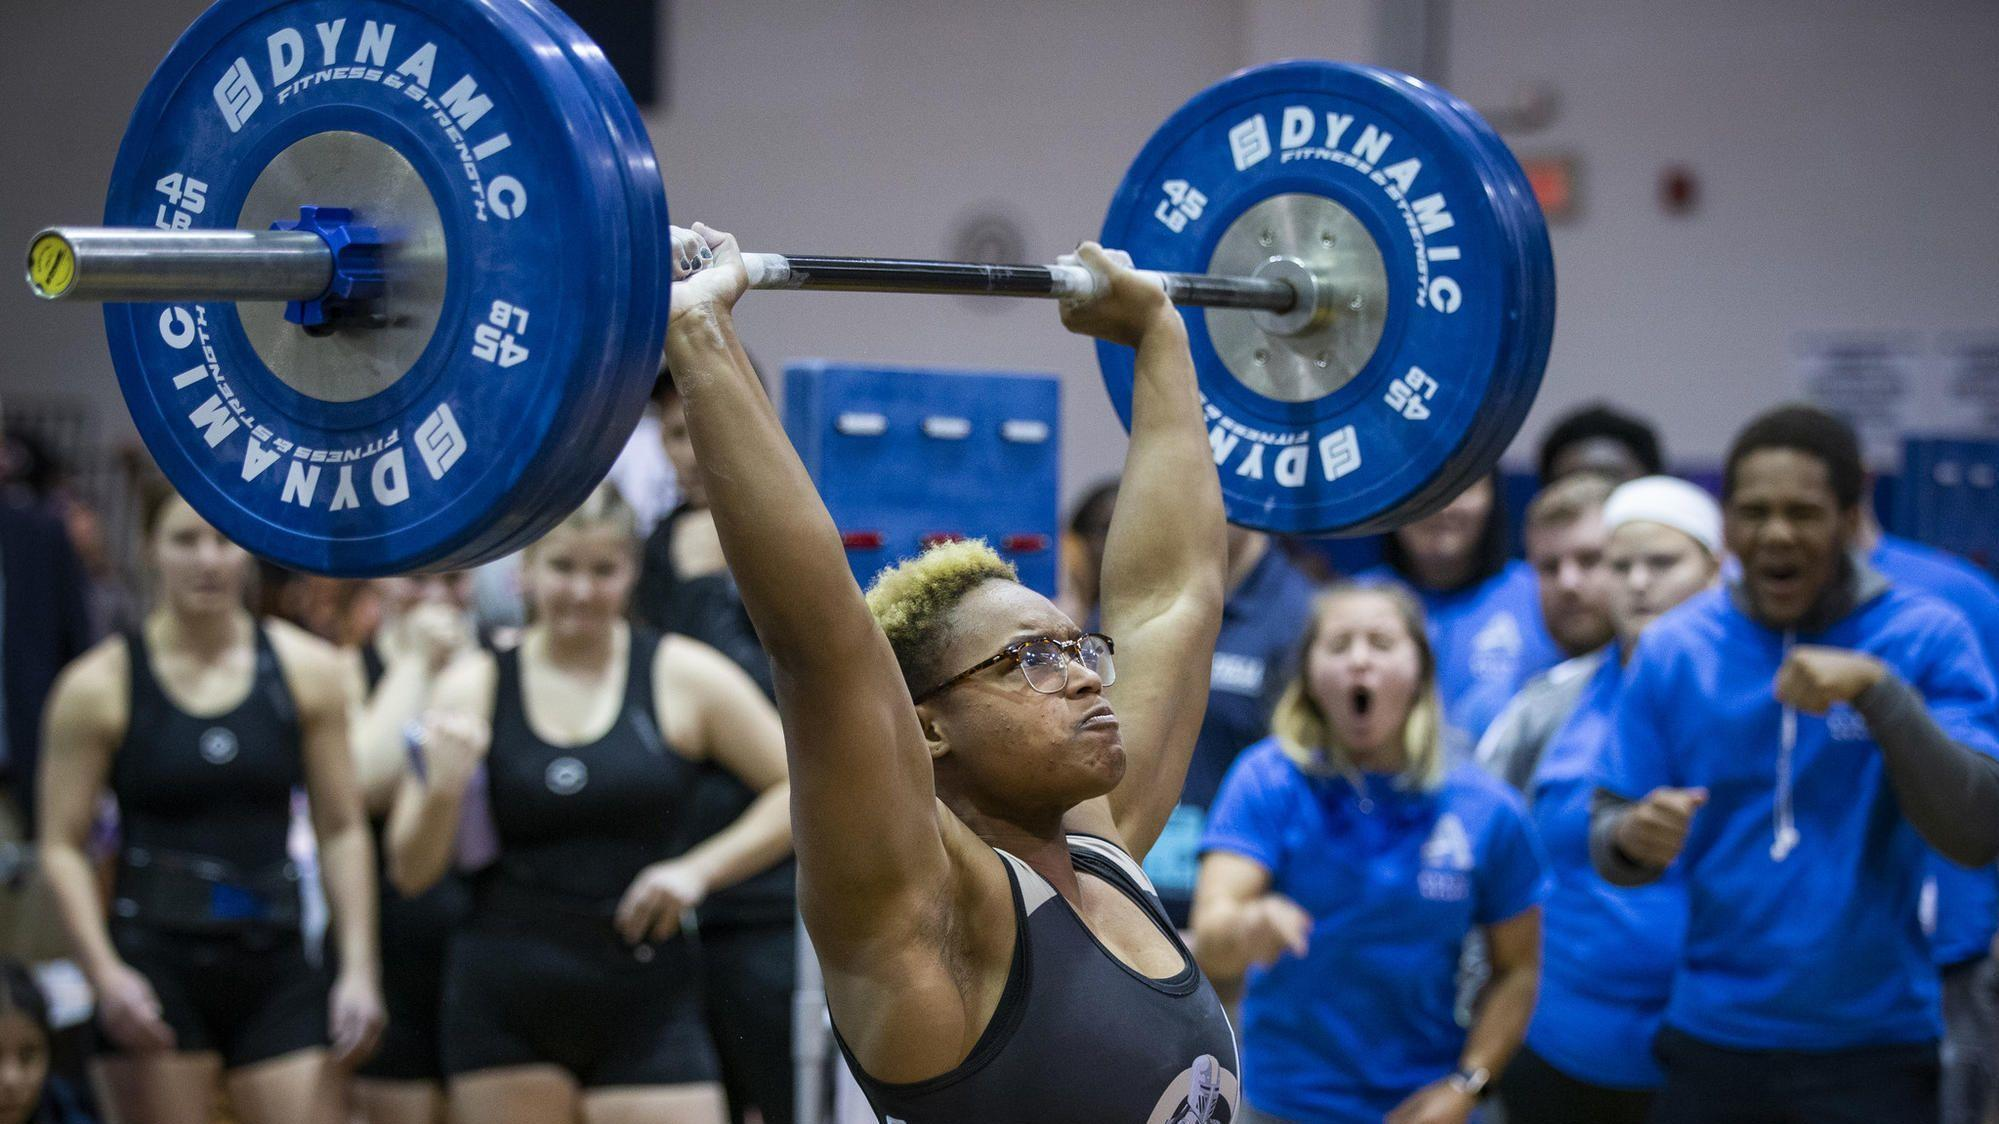 Girls Break Records At State Weightlifting Meet Orlando Sentinel